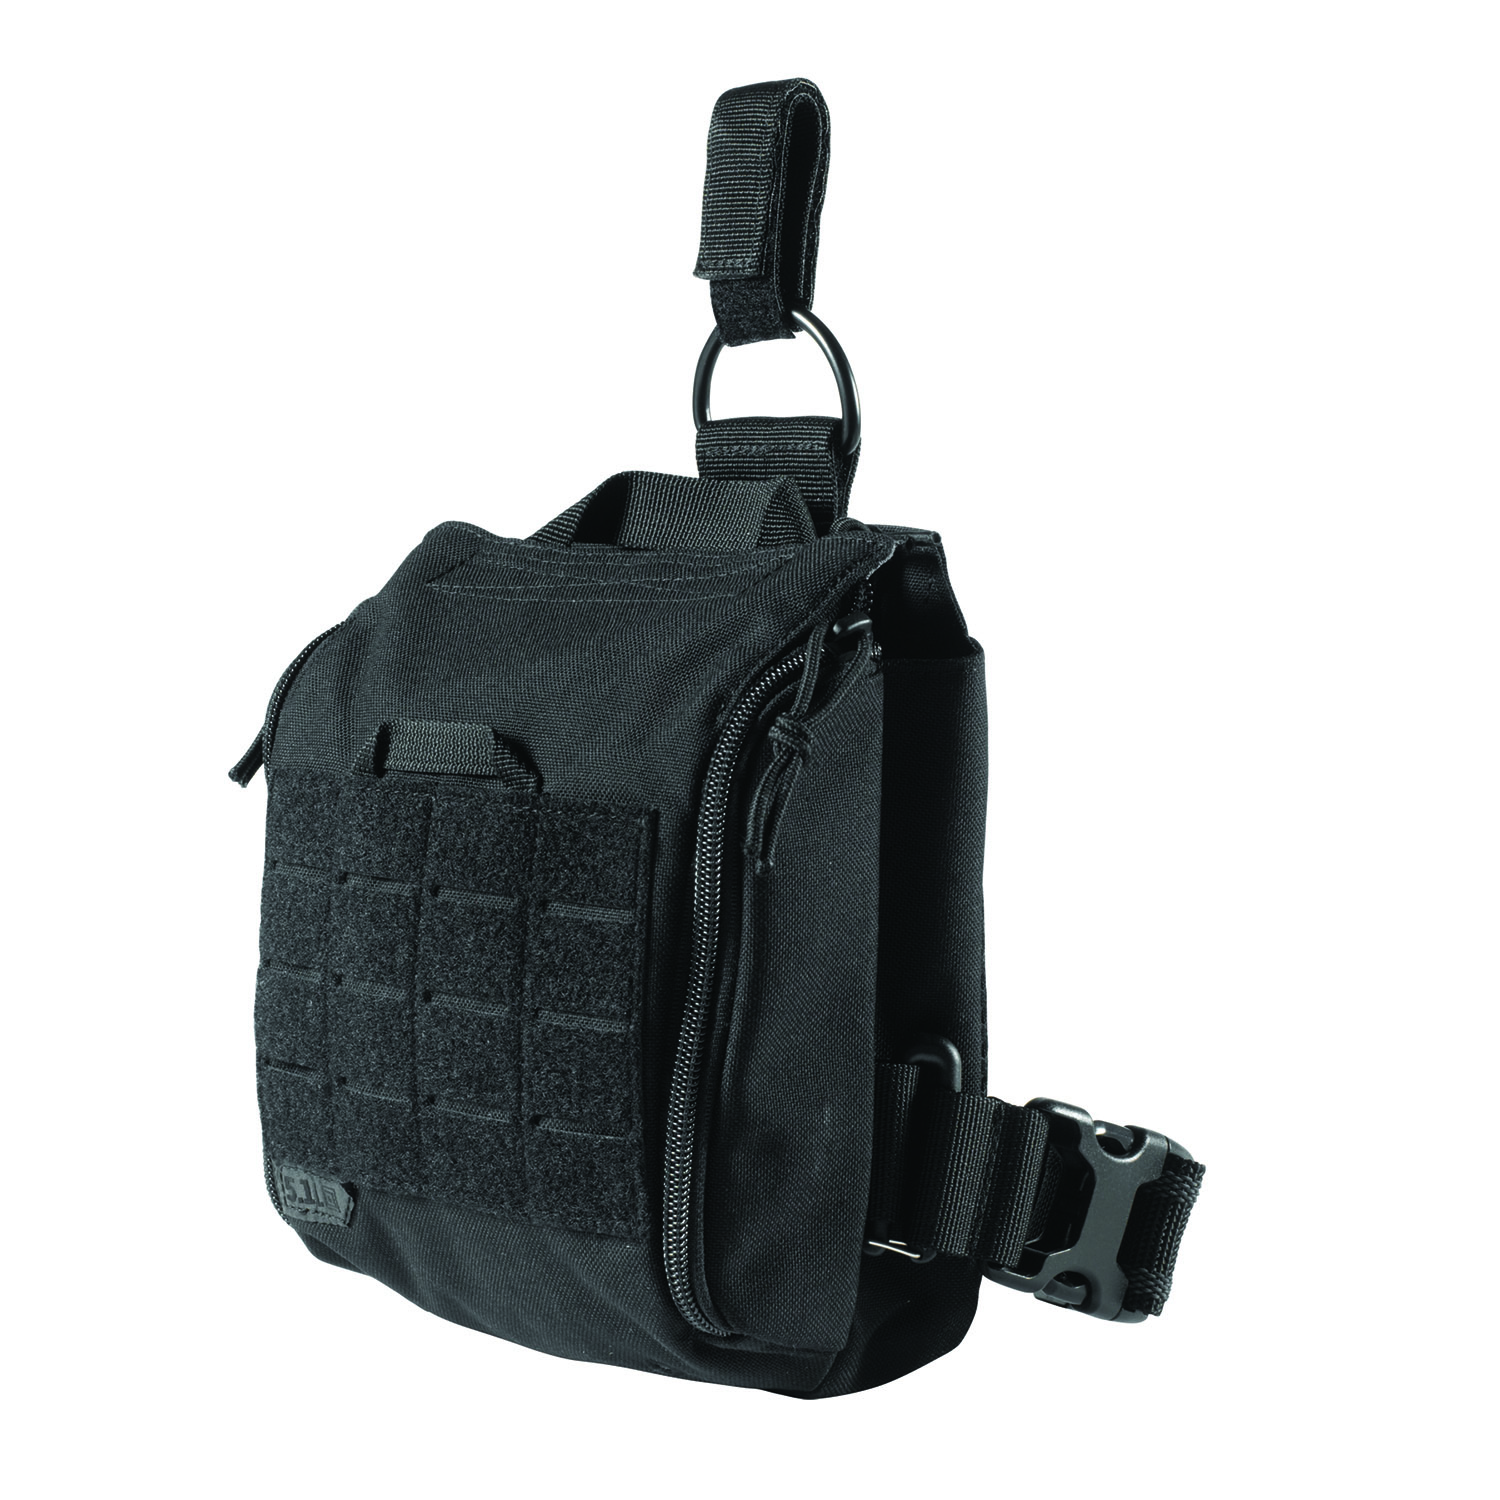 5.11 Tactical TacReady Thigh Rig